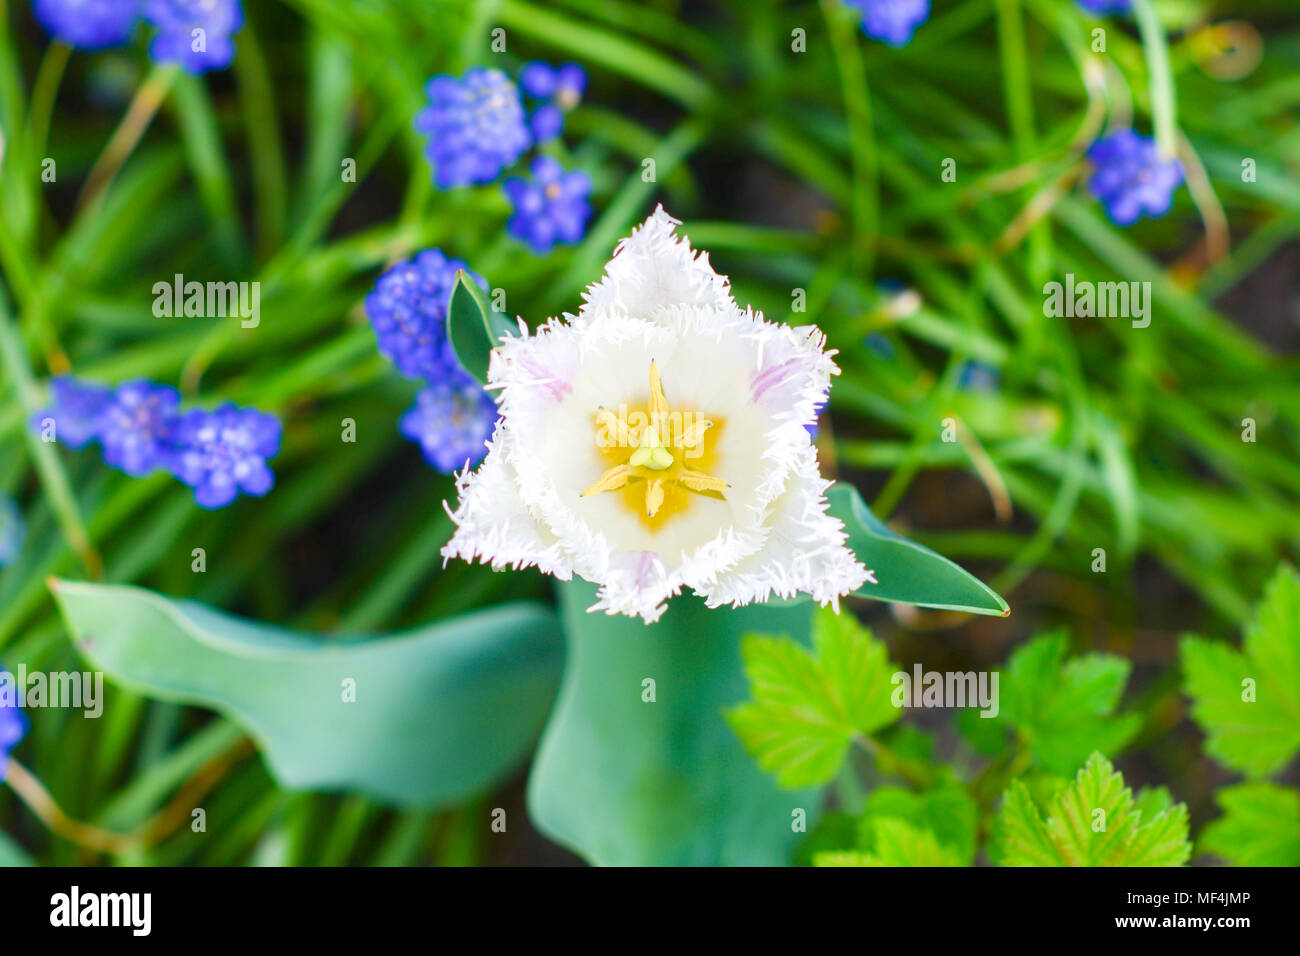 Papagayo Tulip Blooming In The Garden With Other Flowers Spring